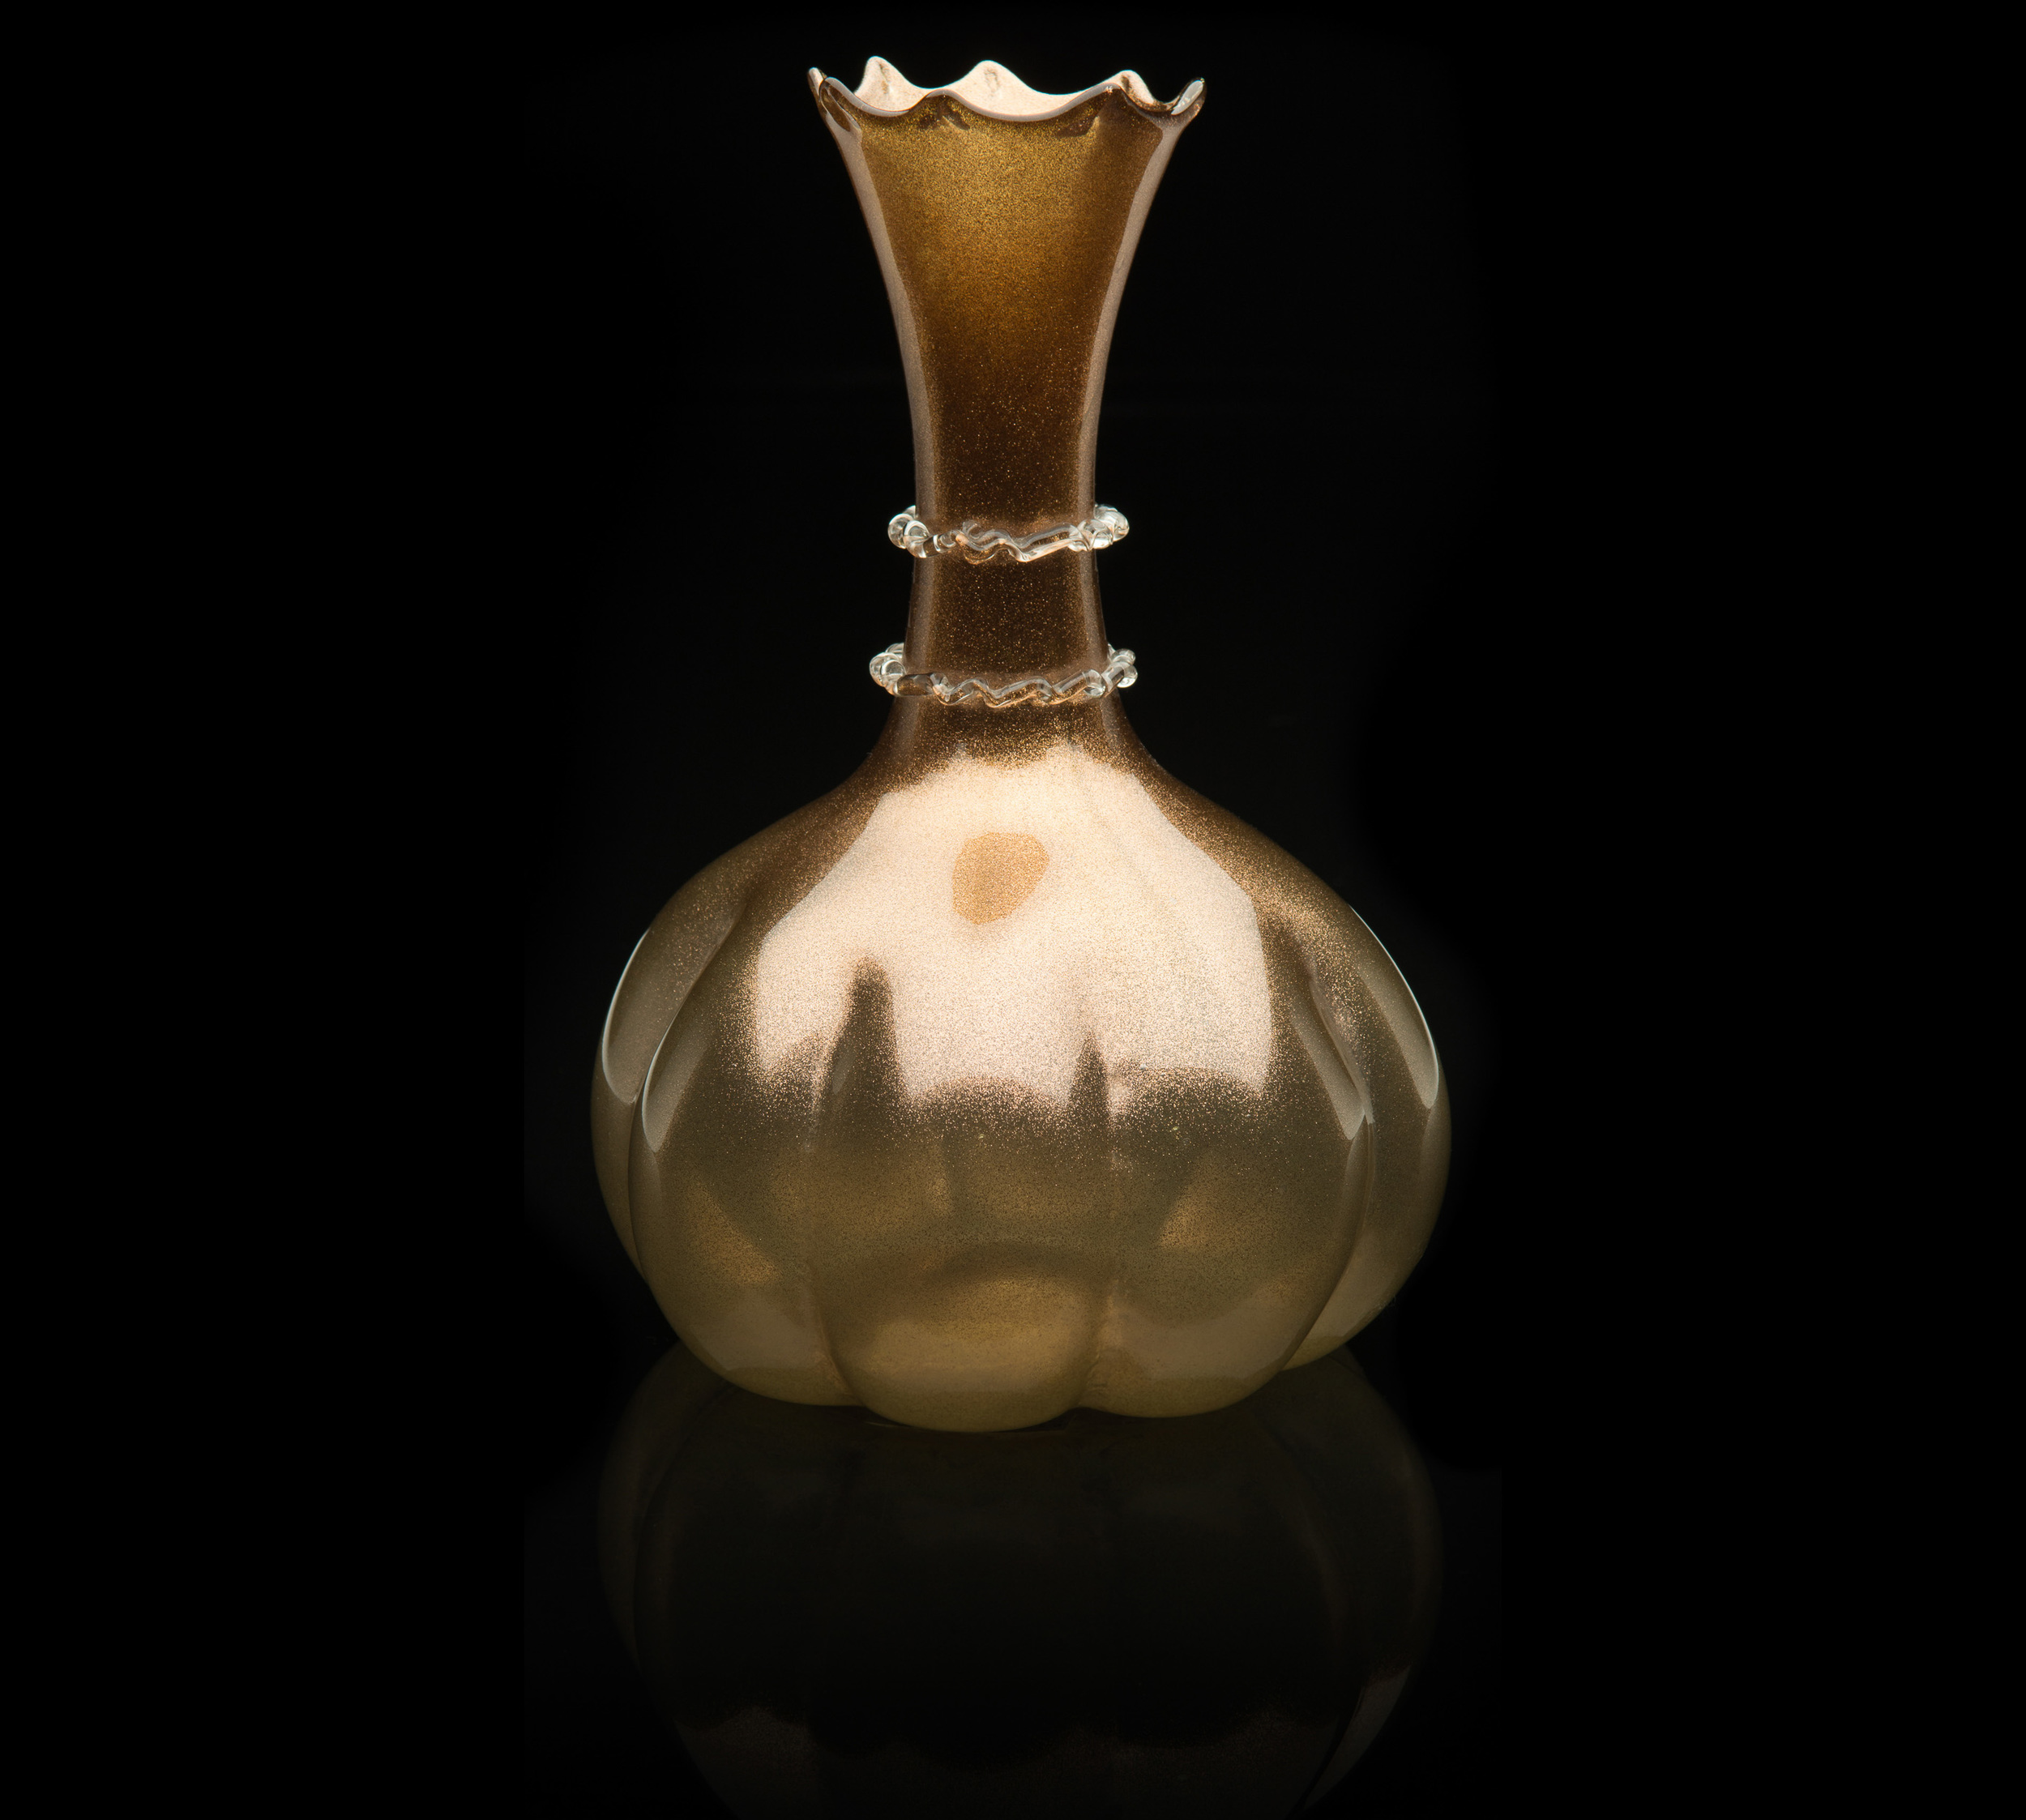 Unknown Venetian, Carafe with Lobed Body and Rigaree Decorated Neck (1890-1910,glass), VV.548